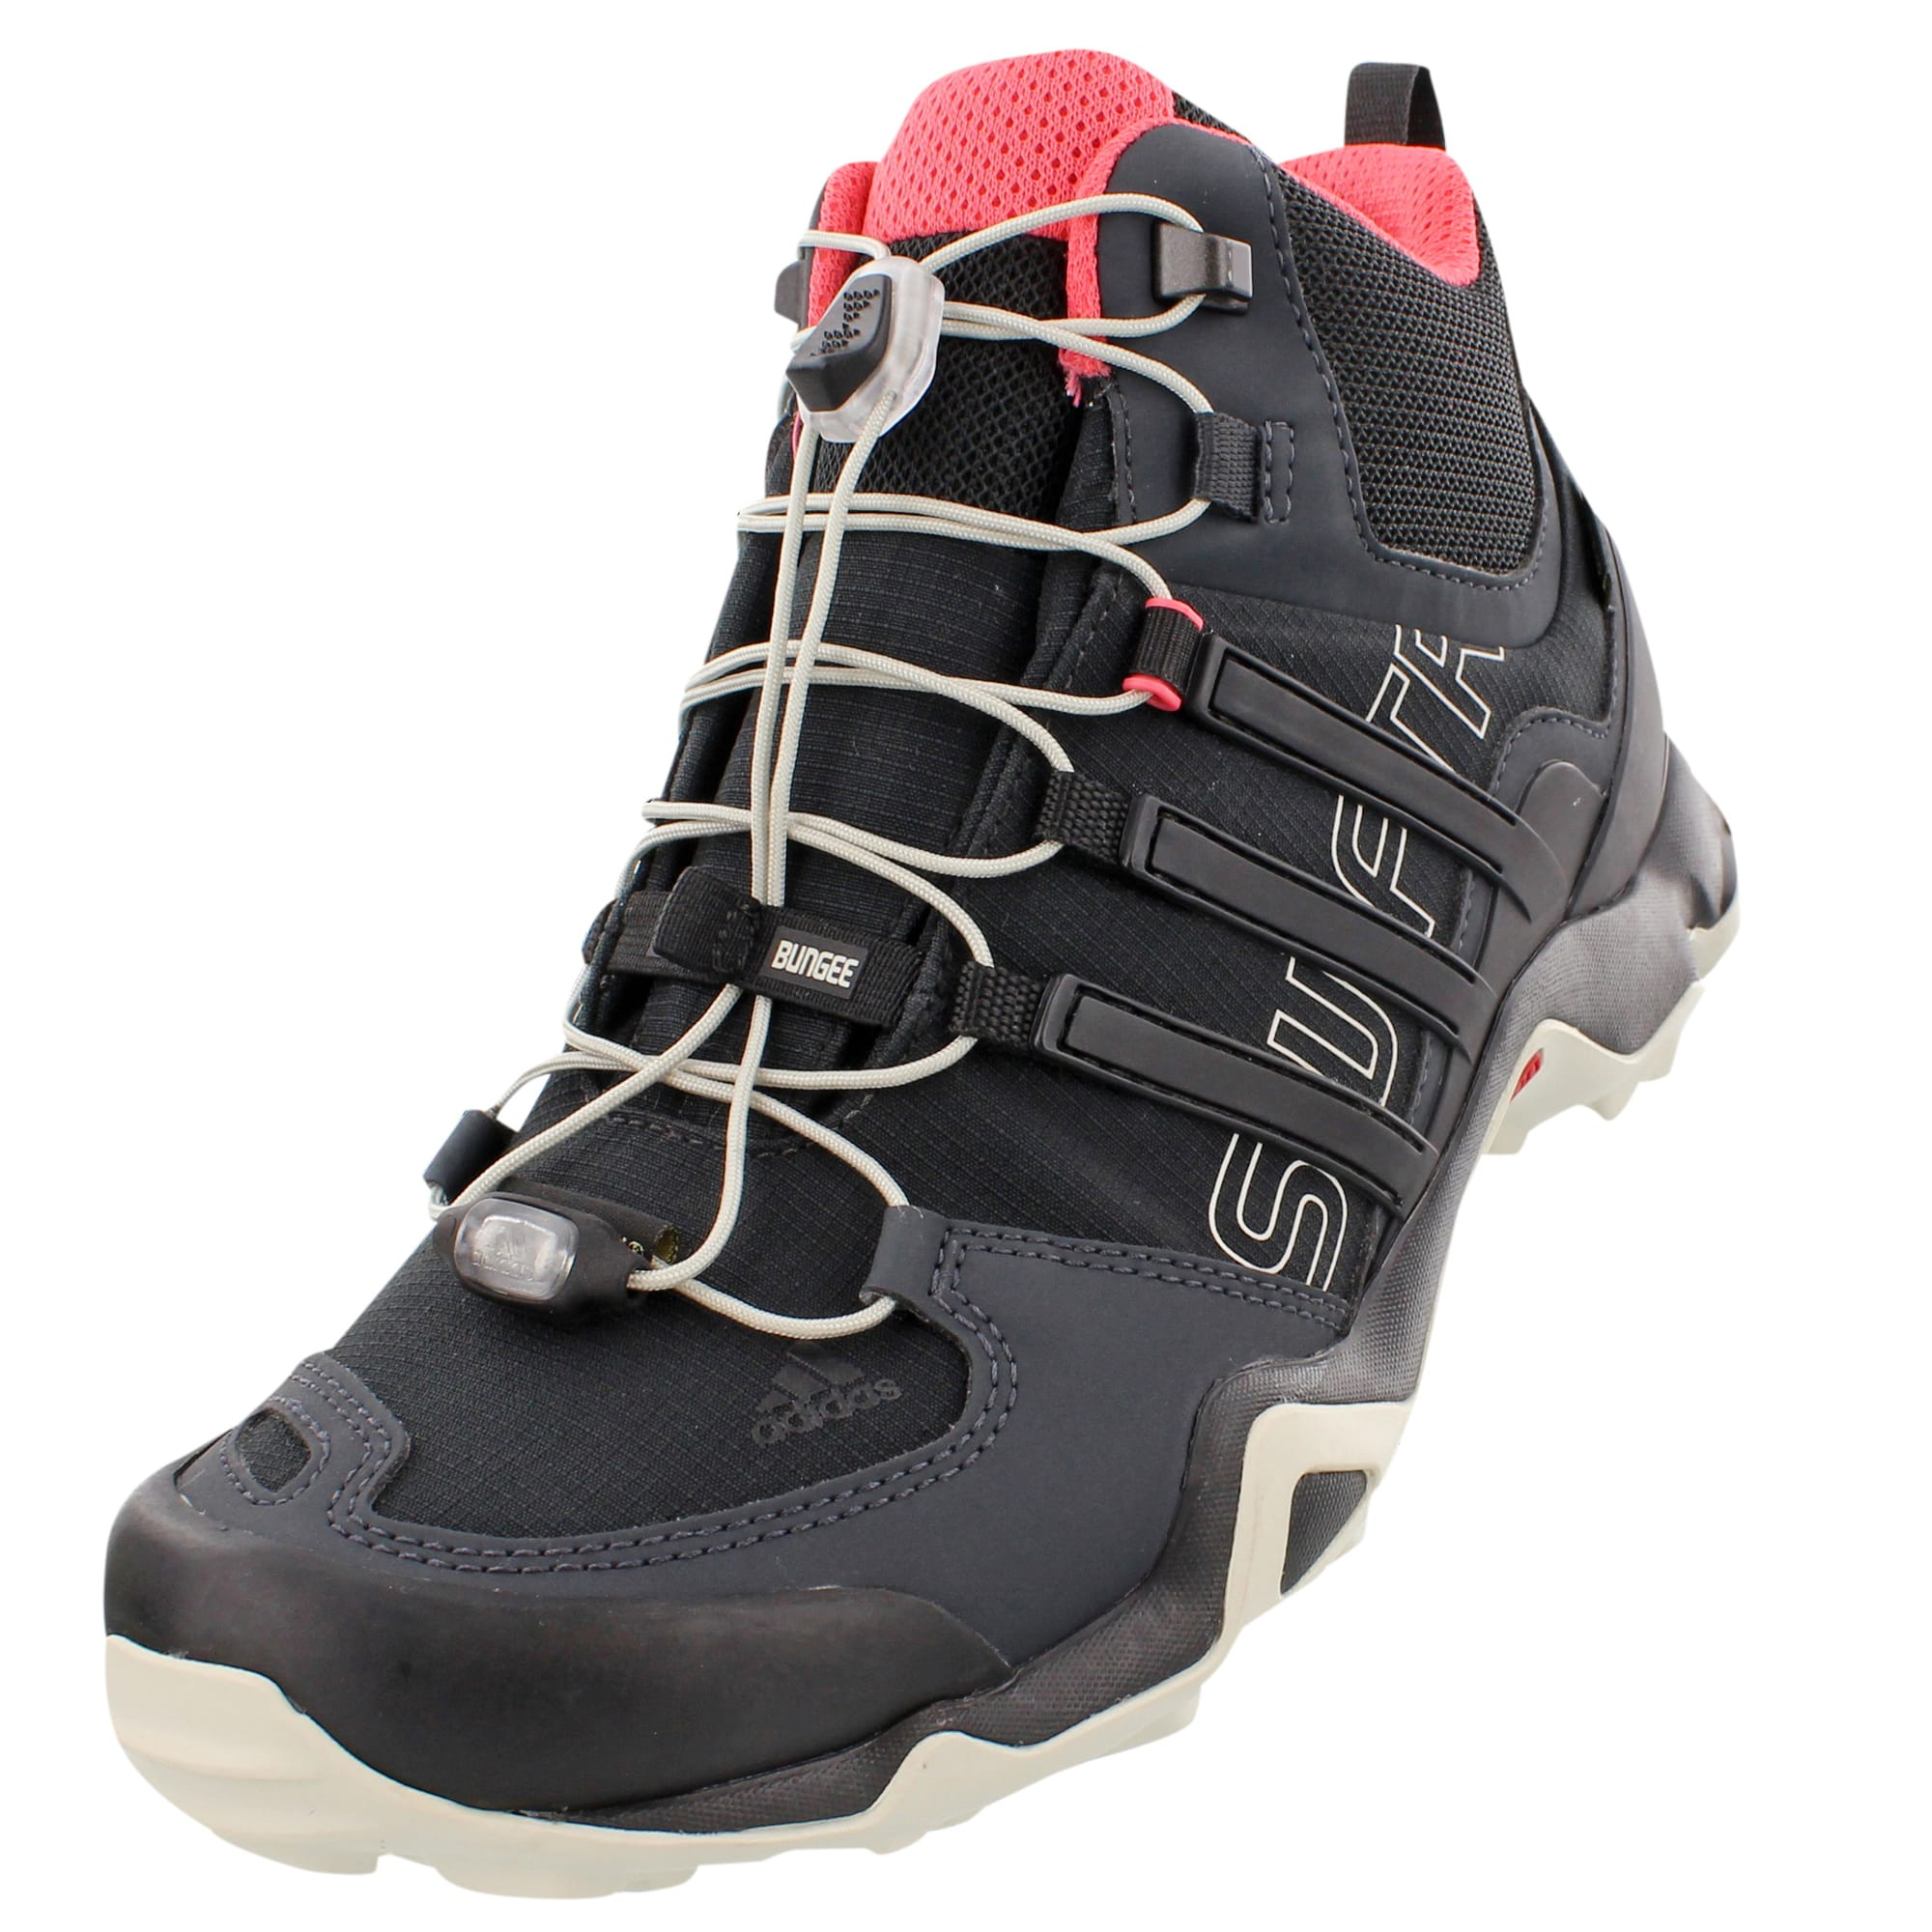 6bfb0d328 Adidas Terrex Swift R Mid GTX Hiking Boots - thumbnail 3